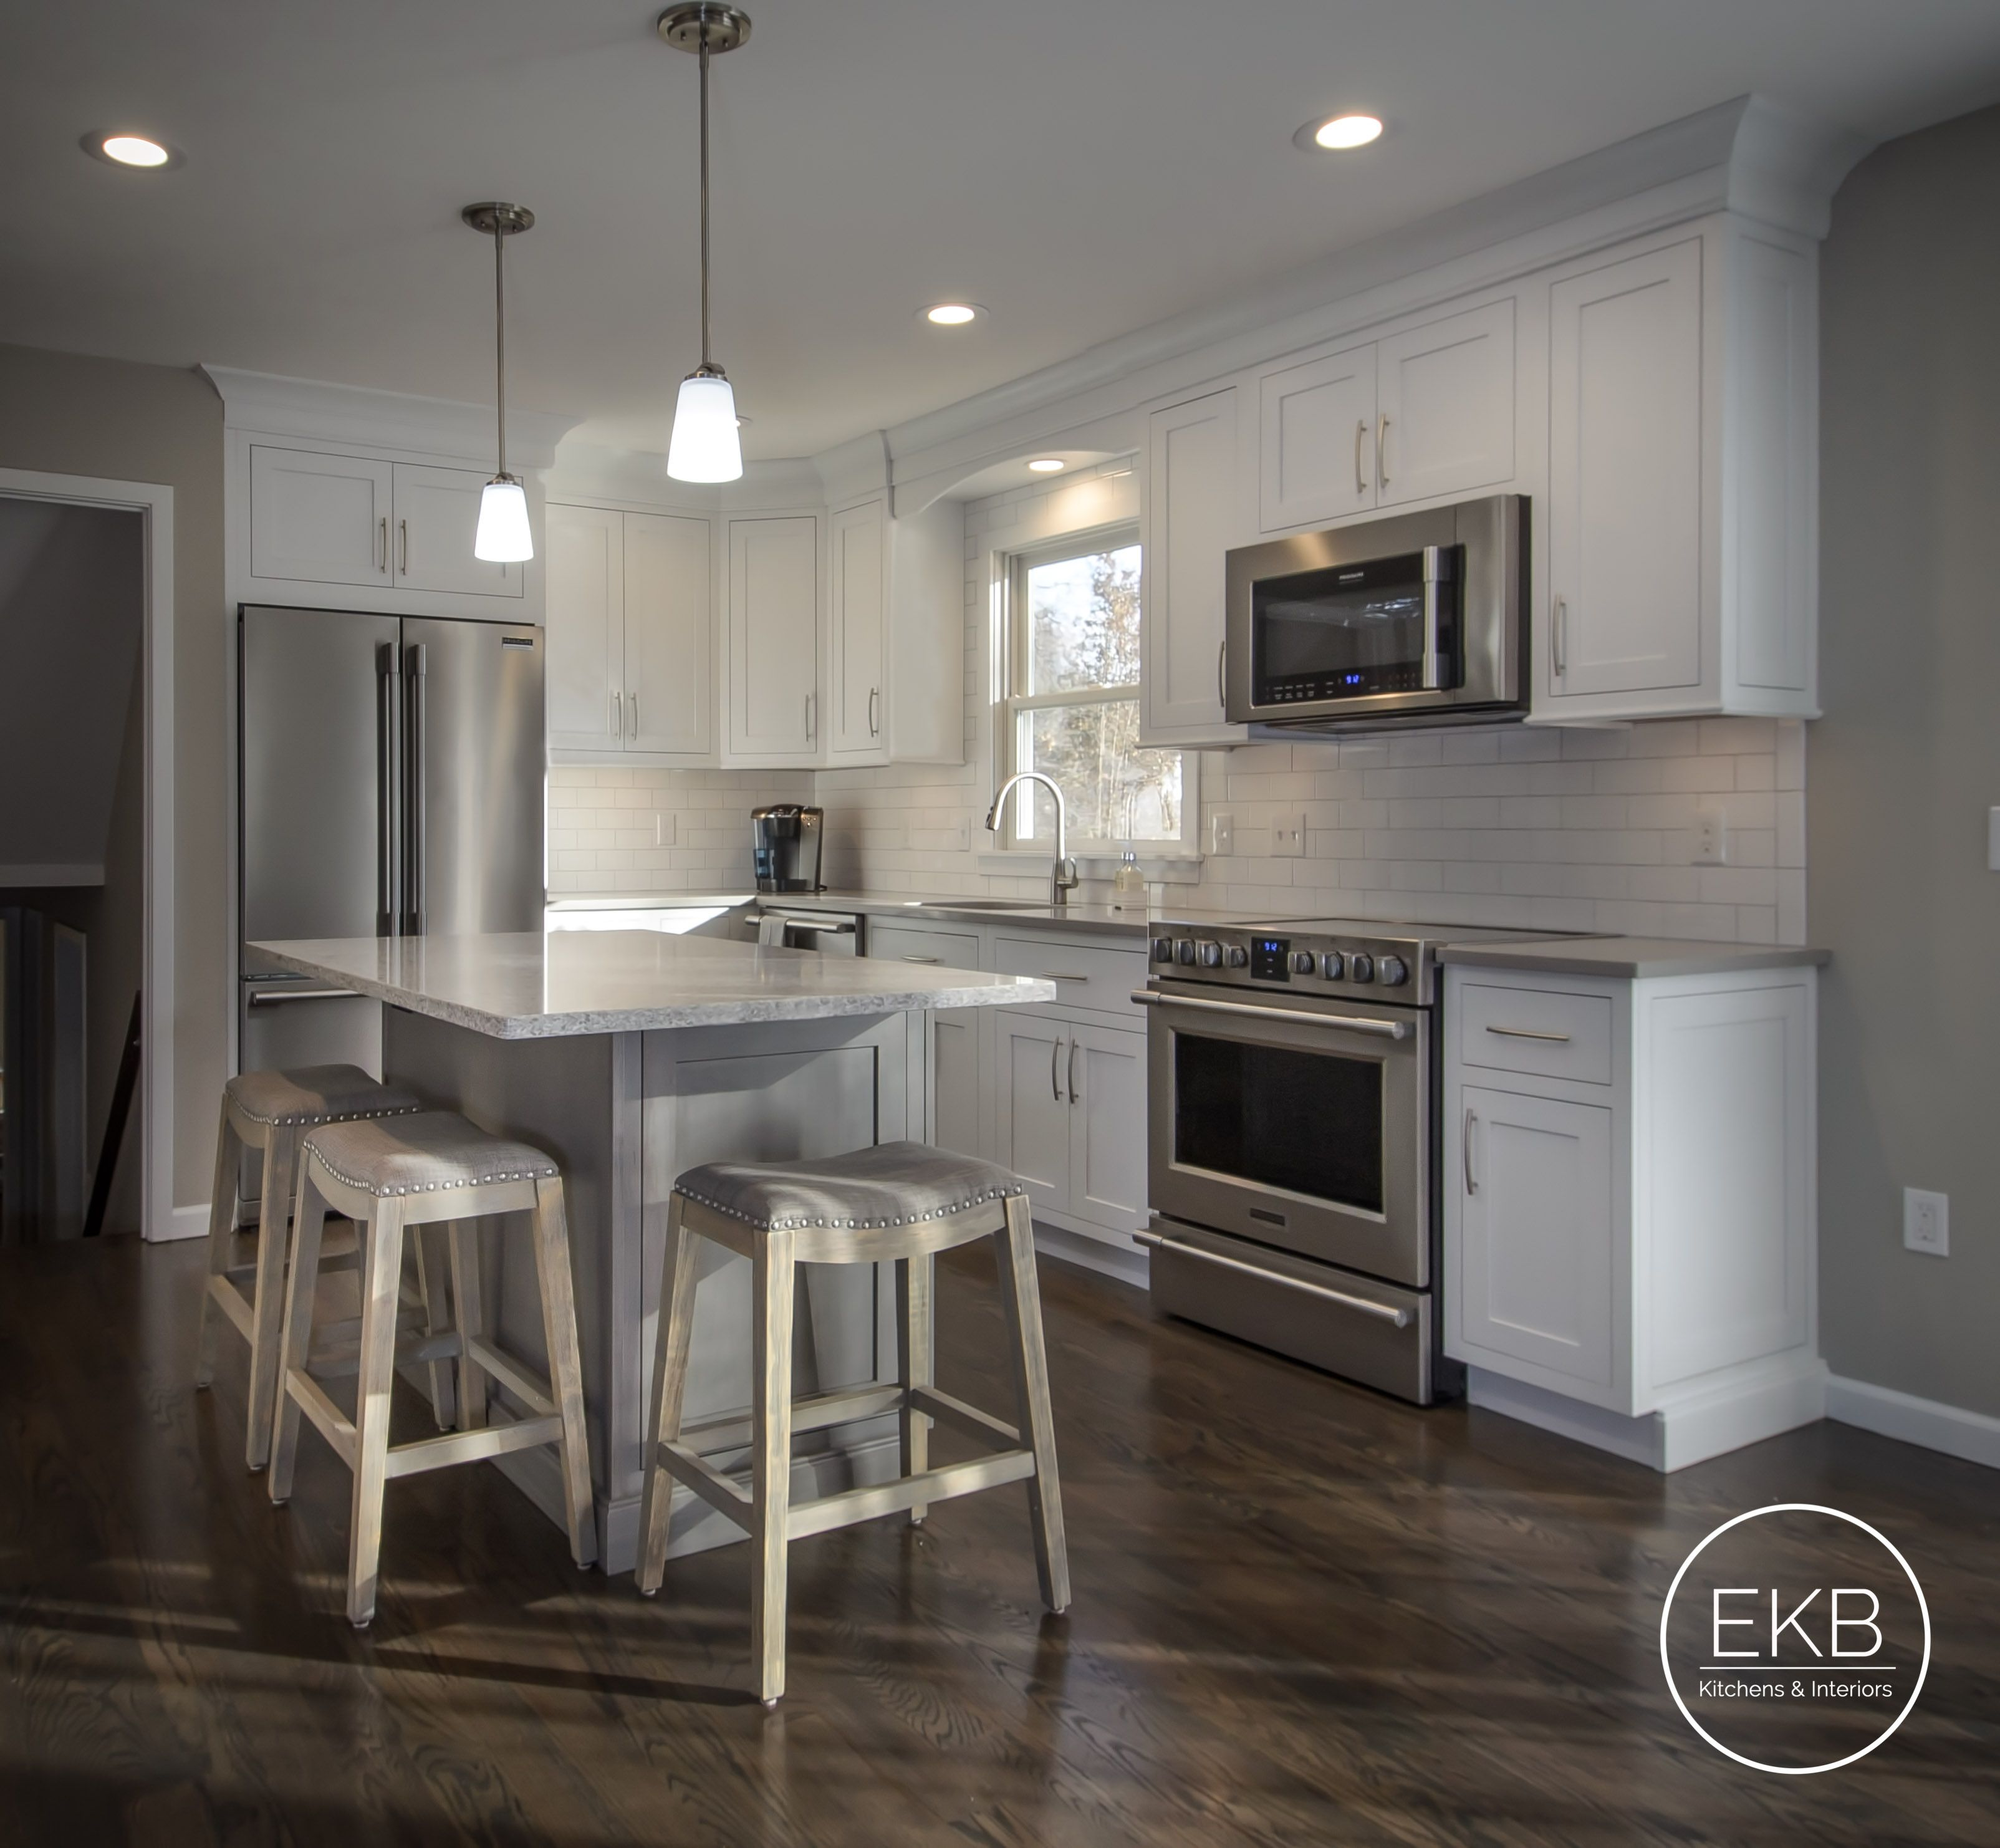 This beatuiful kitchen features Shiloh inset in